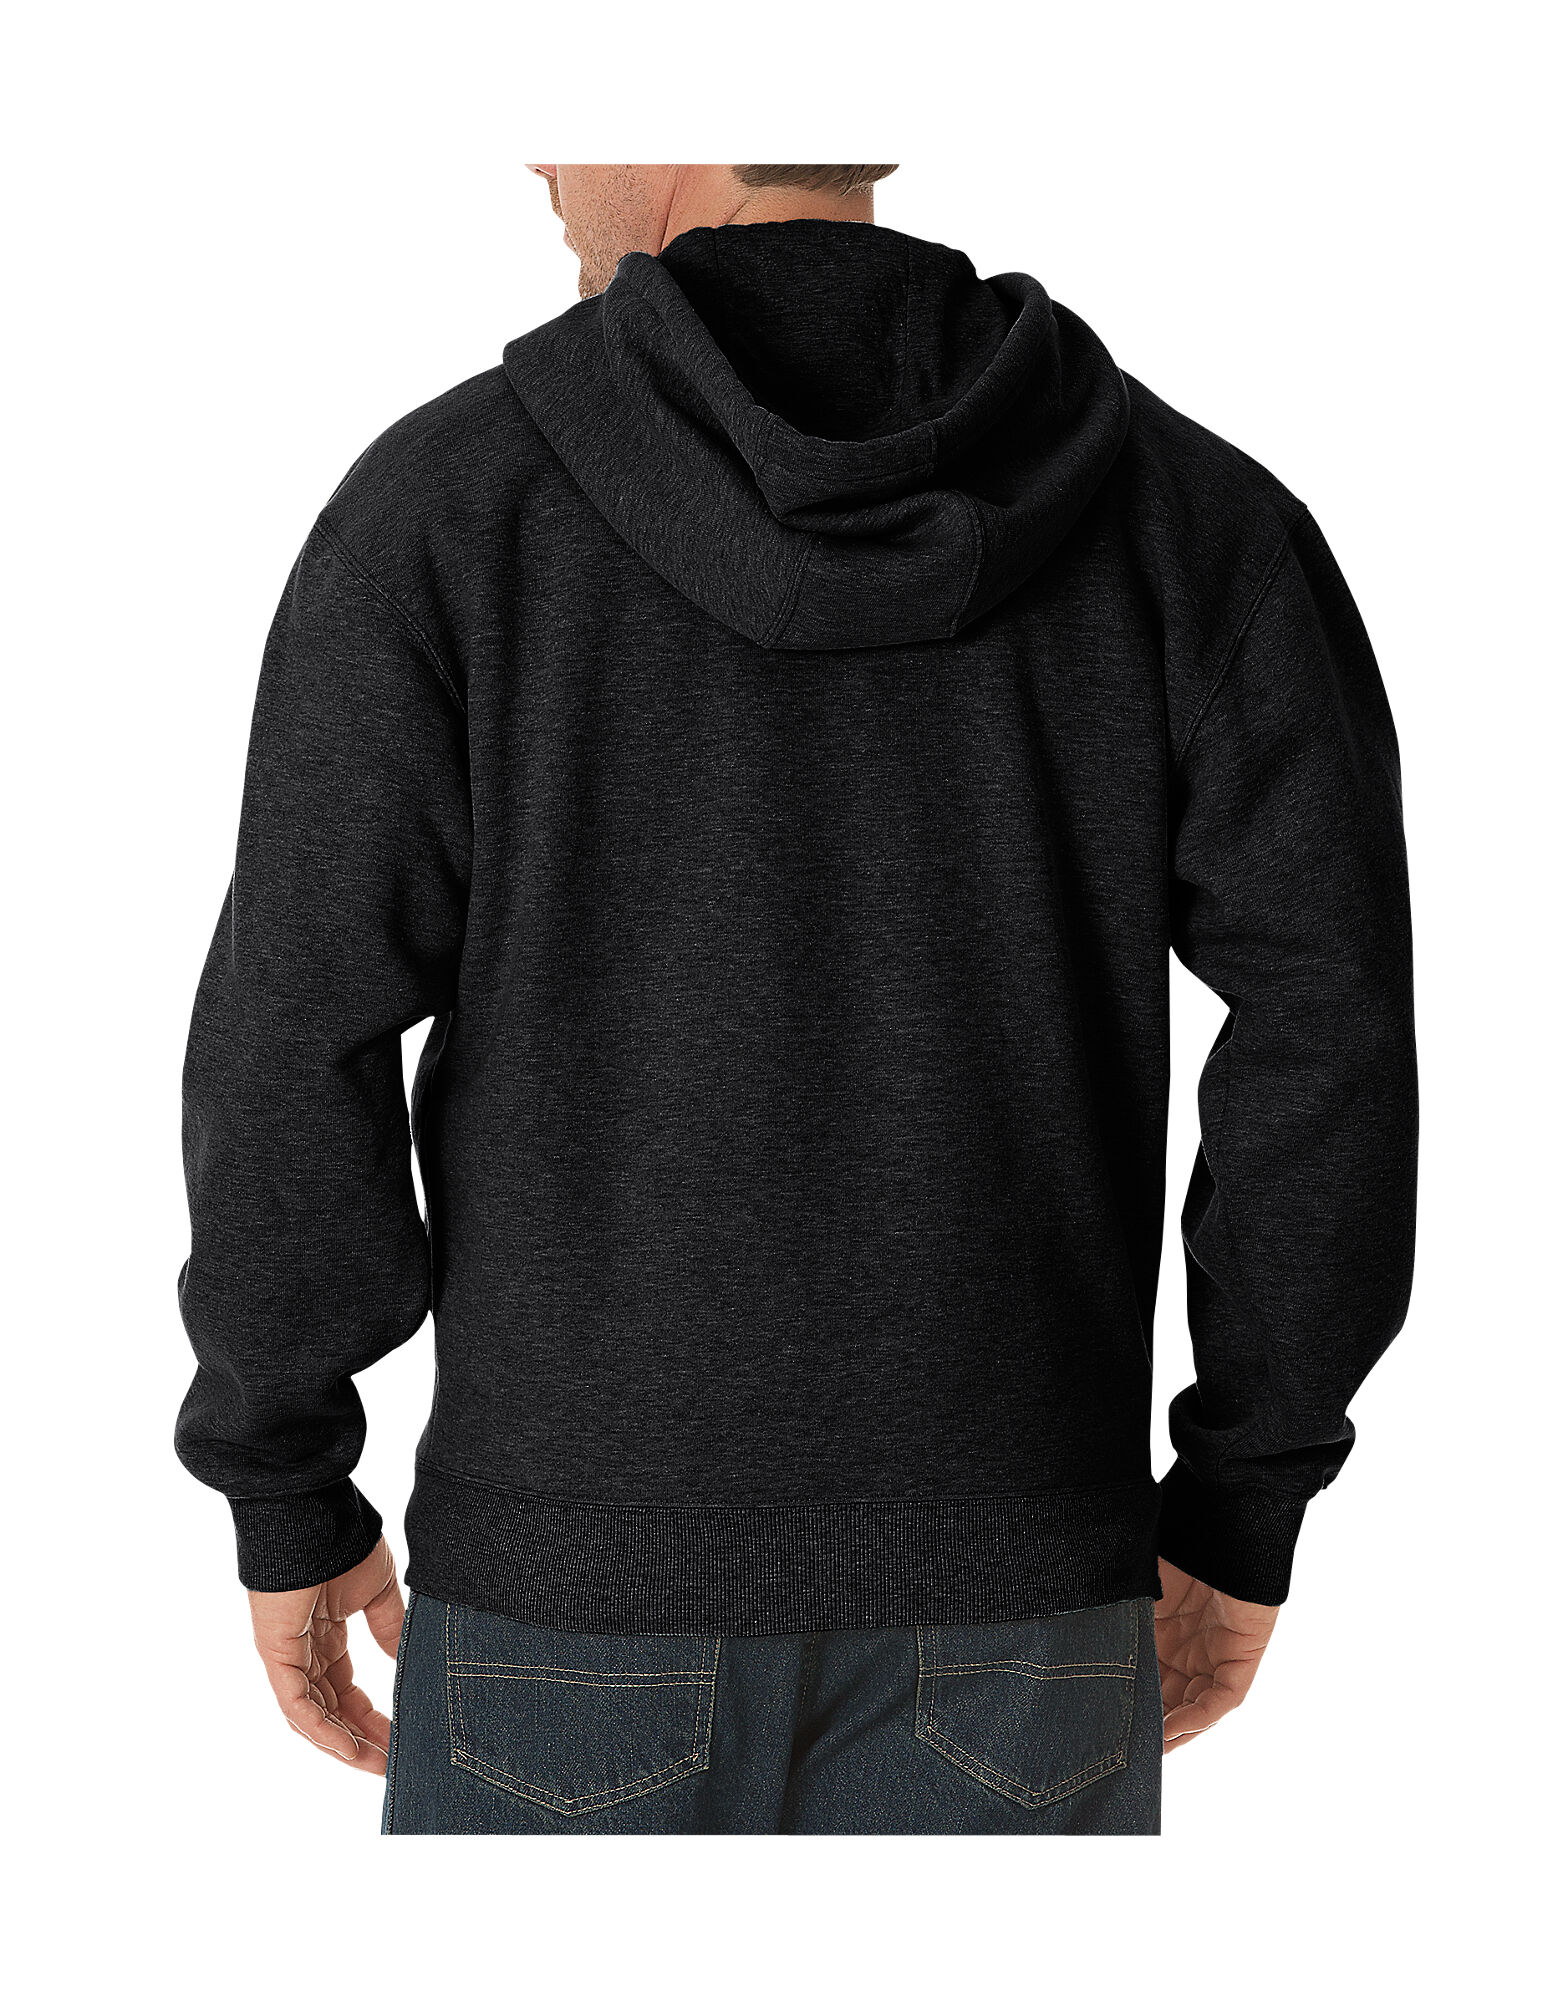 Customize Cozy Hoodies for Your Group Custom hoodies are great for events, reunions, parties, and teams. Just pick a hoodie, choose a color, and start designing.